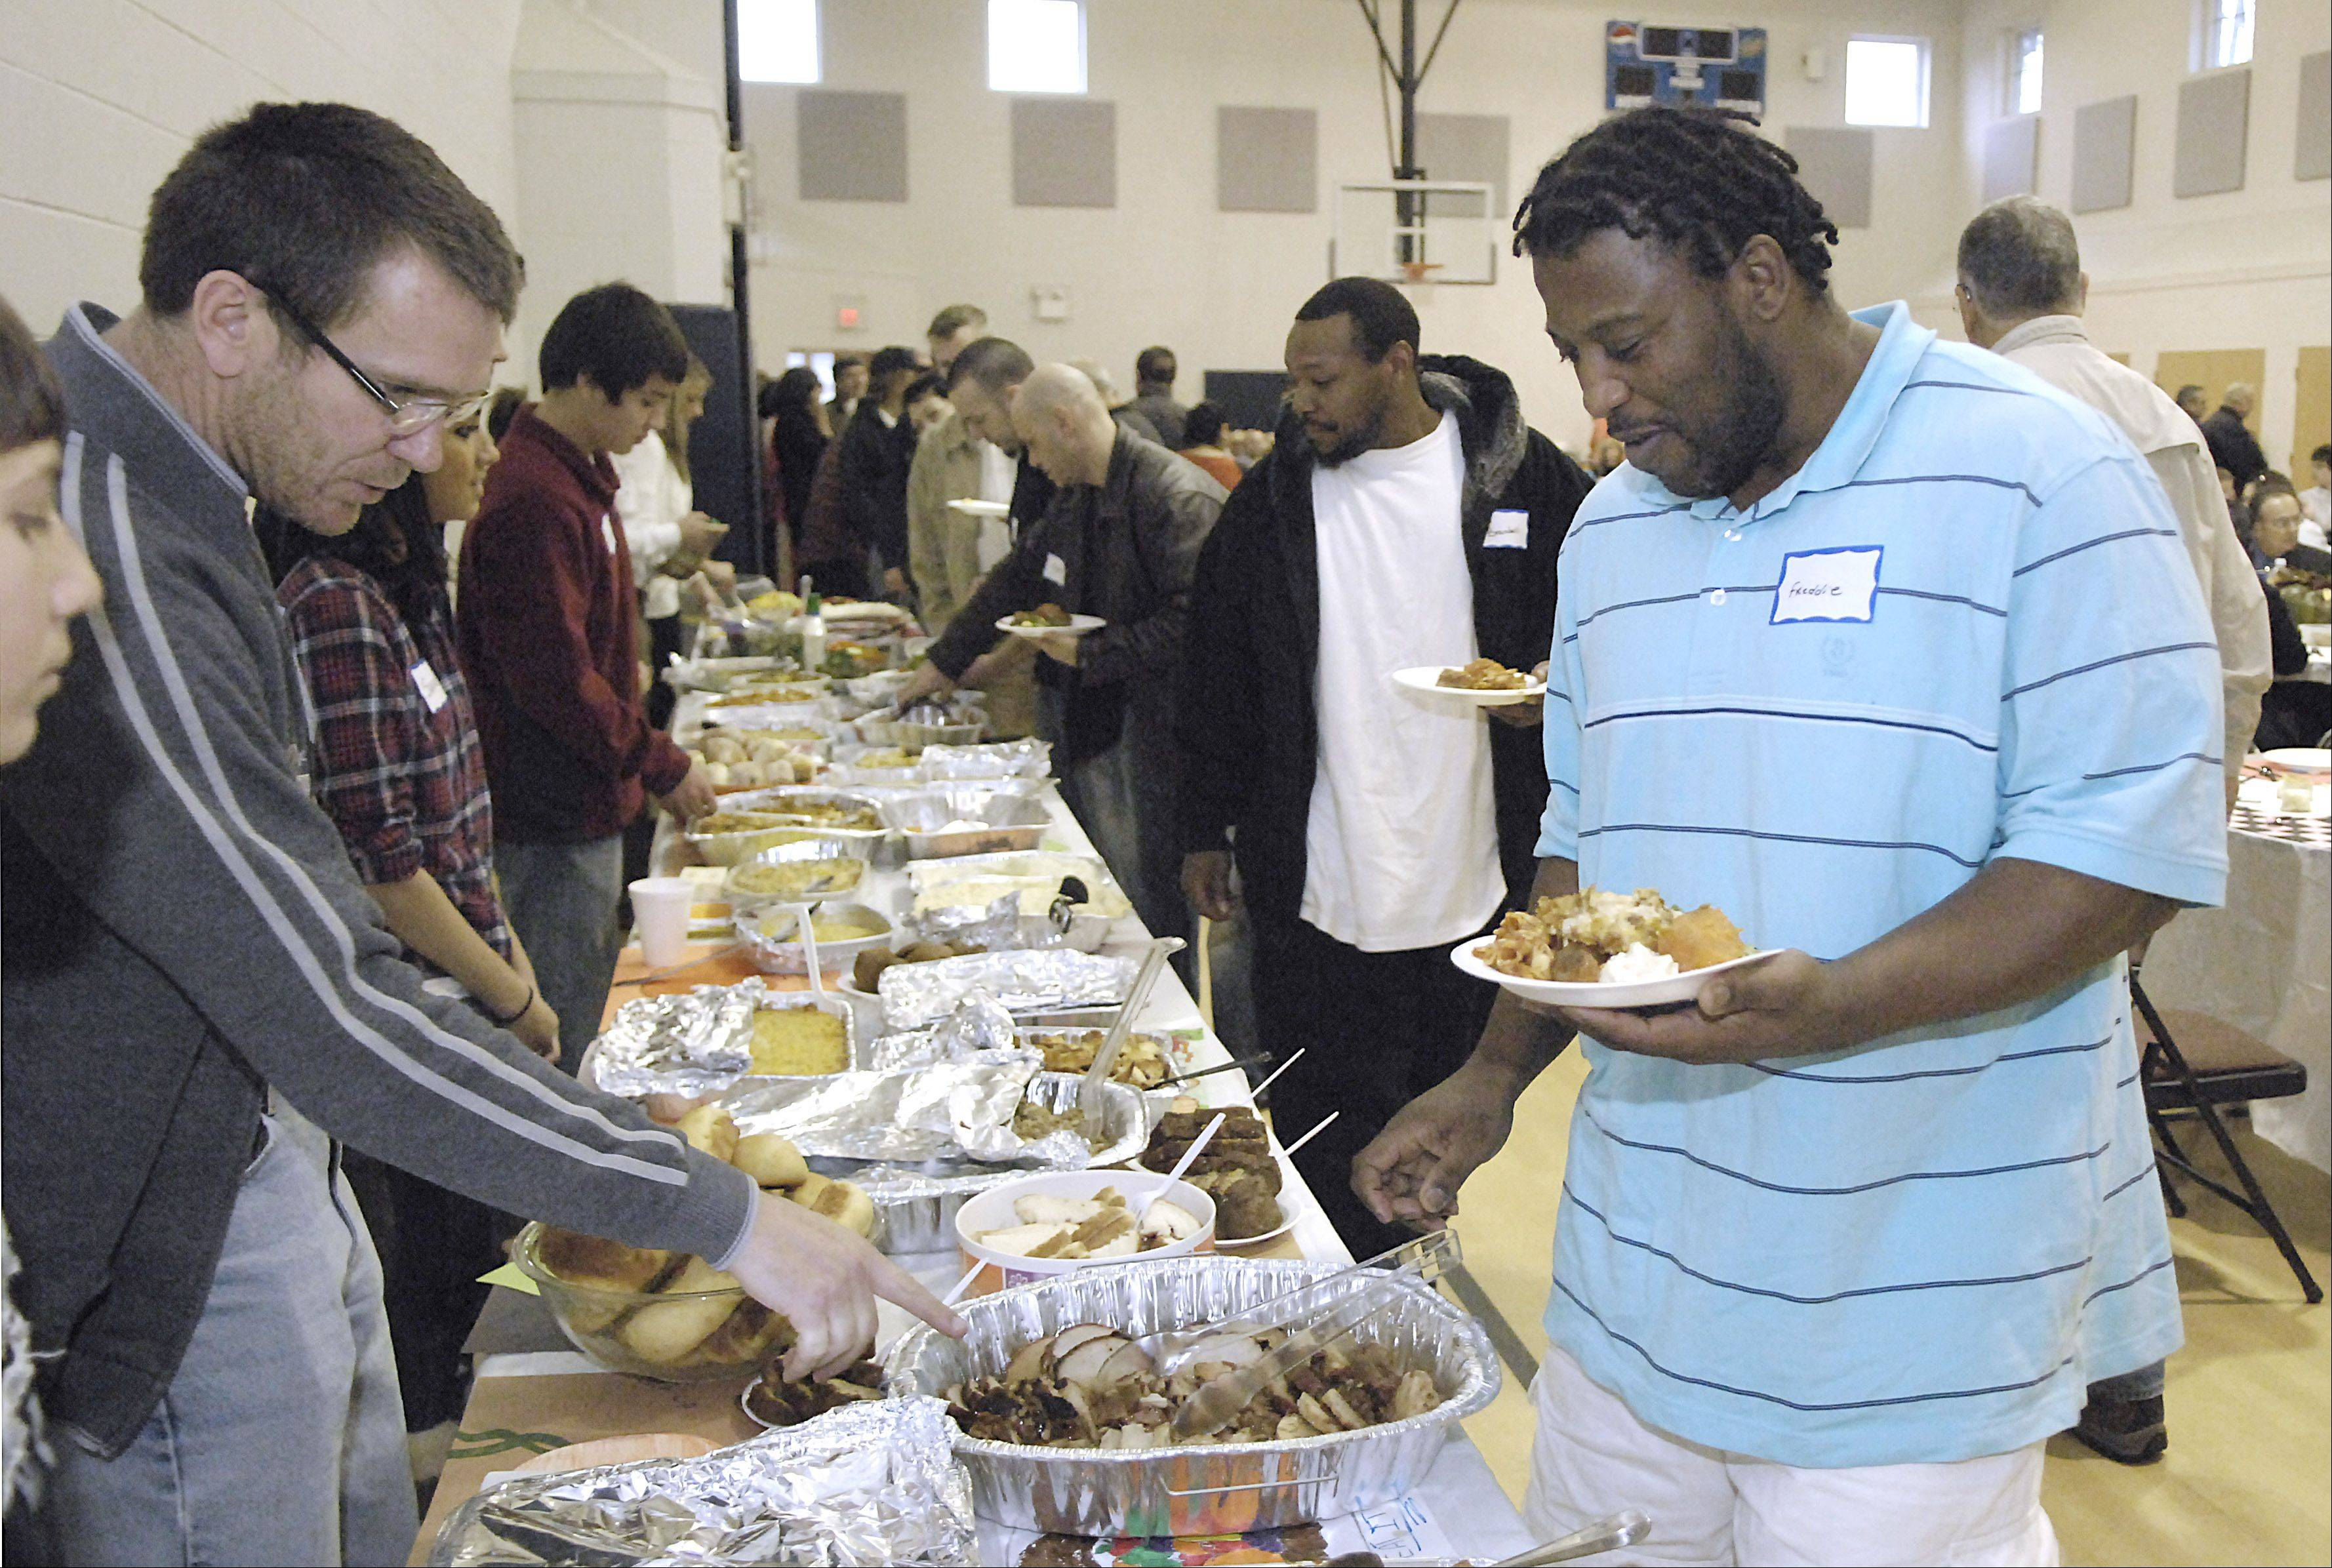 Volunteer John Myall of St. Charles directs Freddie Parson of Carpentersville toward some pork for his plate at the Lazarus House Community Feast in St. Charles on Thanksgiving Day last year.